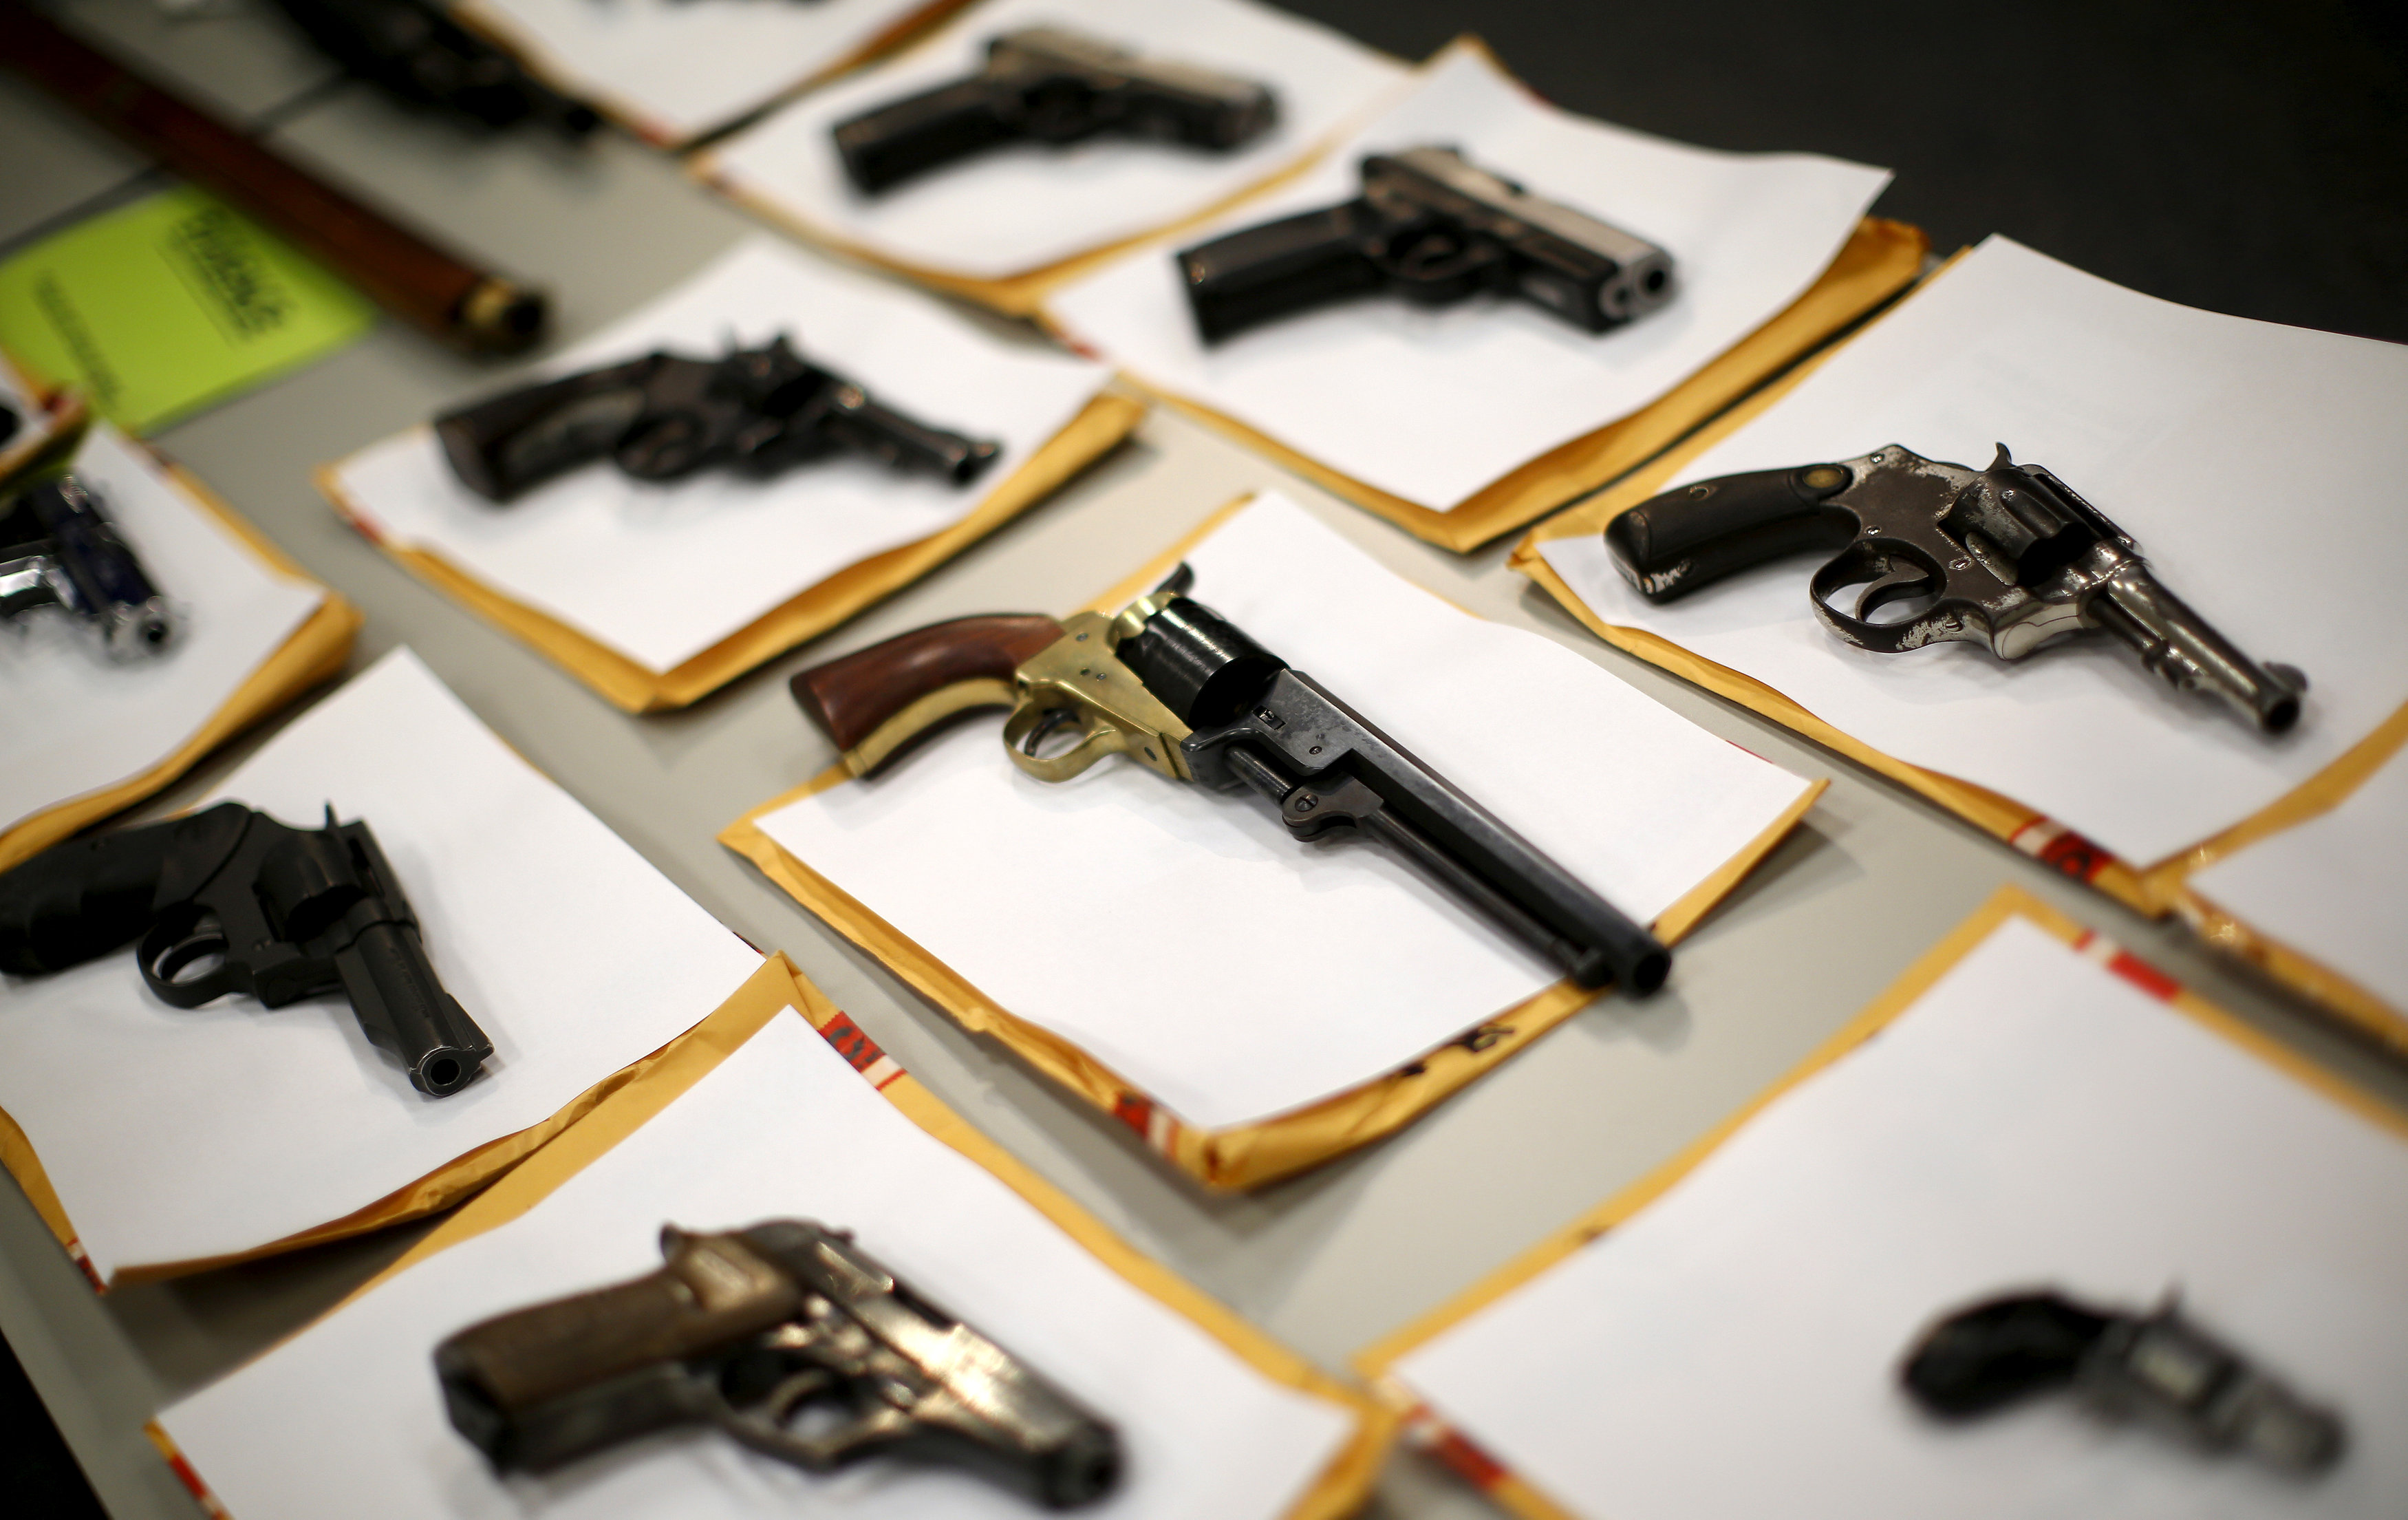 FILE PHOTO: Some of the guns seized over the last week are seen on display at the Chicago Police Department in Chicago, Illinois, United States, August 31, 2015. REUTERS/Jim Young/File Photo